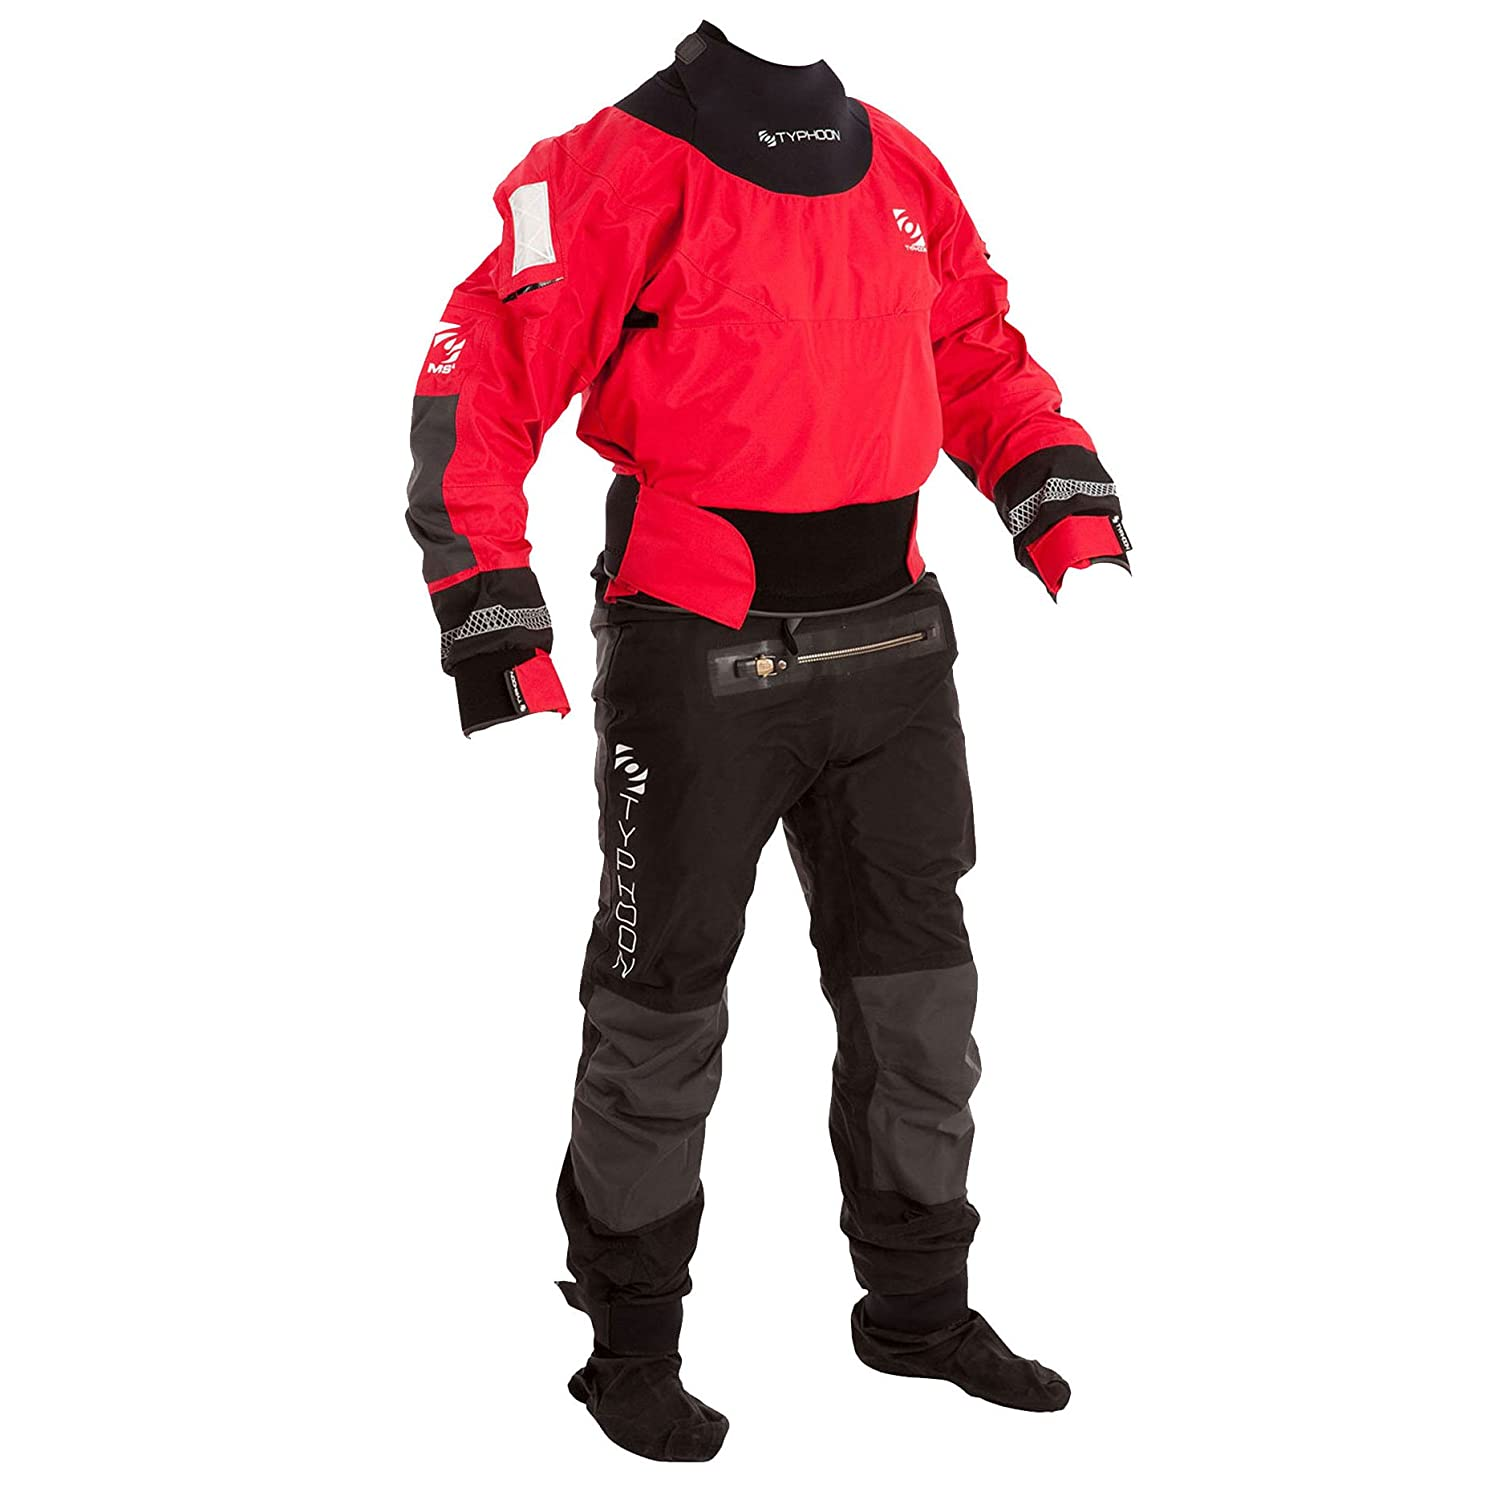 Typhoonマルチスポーツ4 Drysuit with B015RK94QI Con Zip + FREE Thermal Drysuit Thermal Undersuit B015RK94QI XX-Large, 日本防災センター:6730b985 --- itxassou.fr